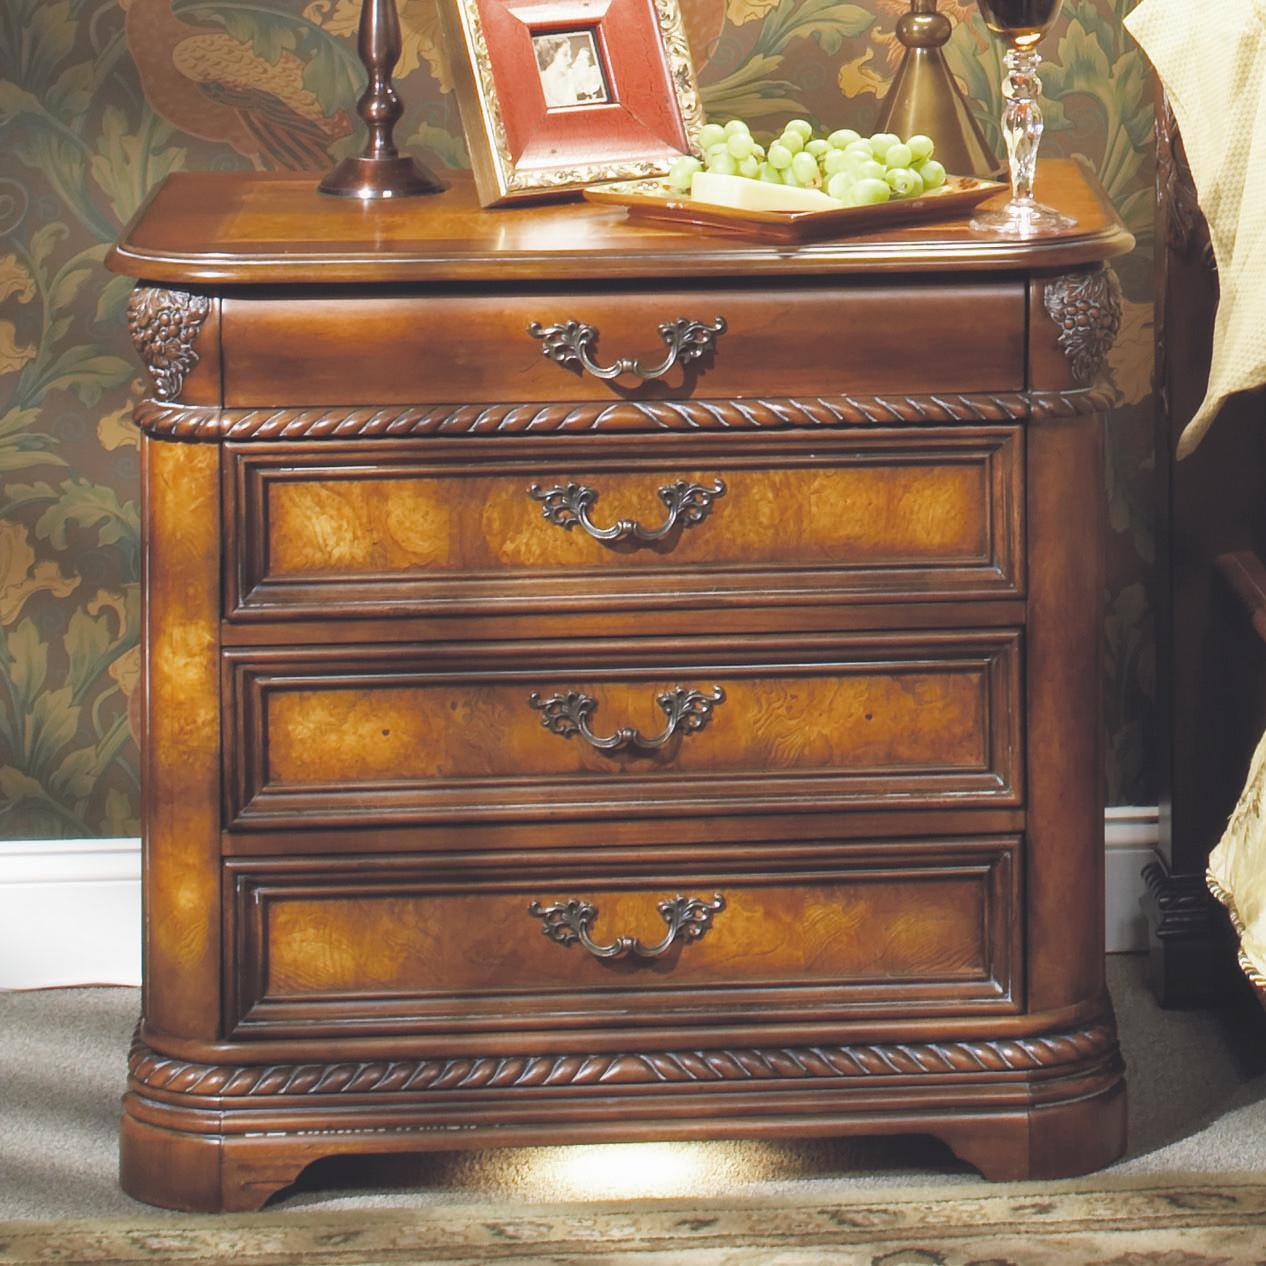 Aspenhome Napa I74 9450 3 Liv360 Nightstand With Pullout